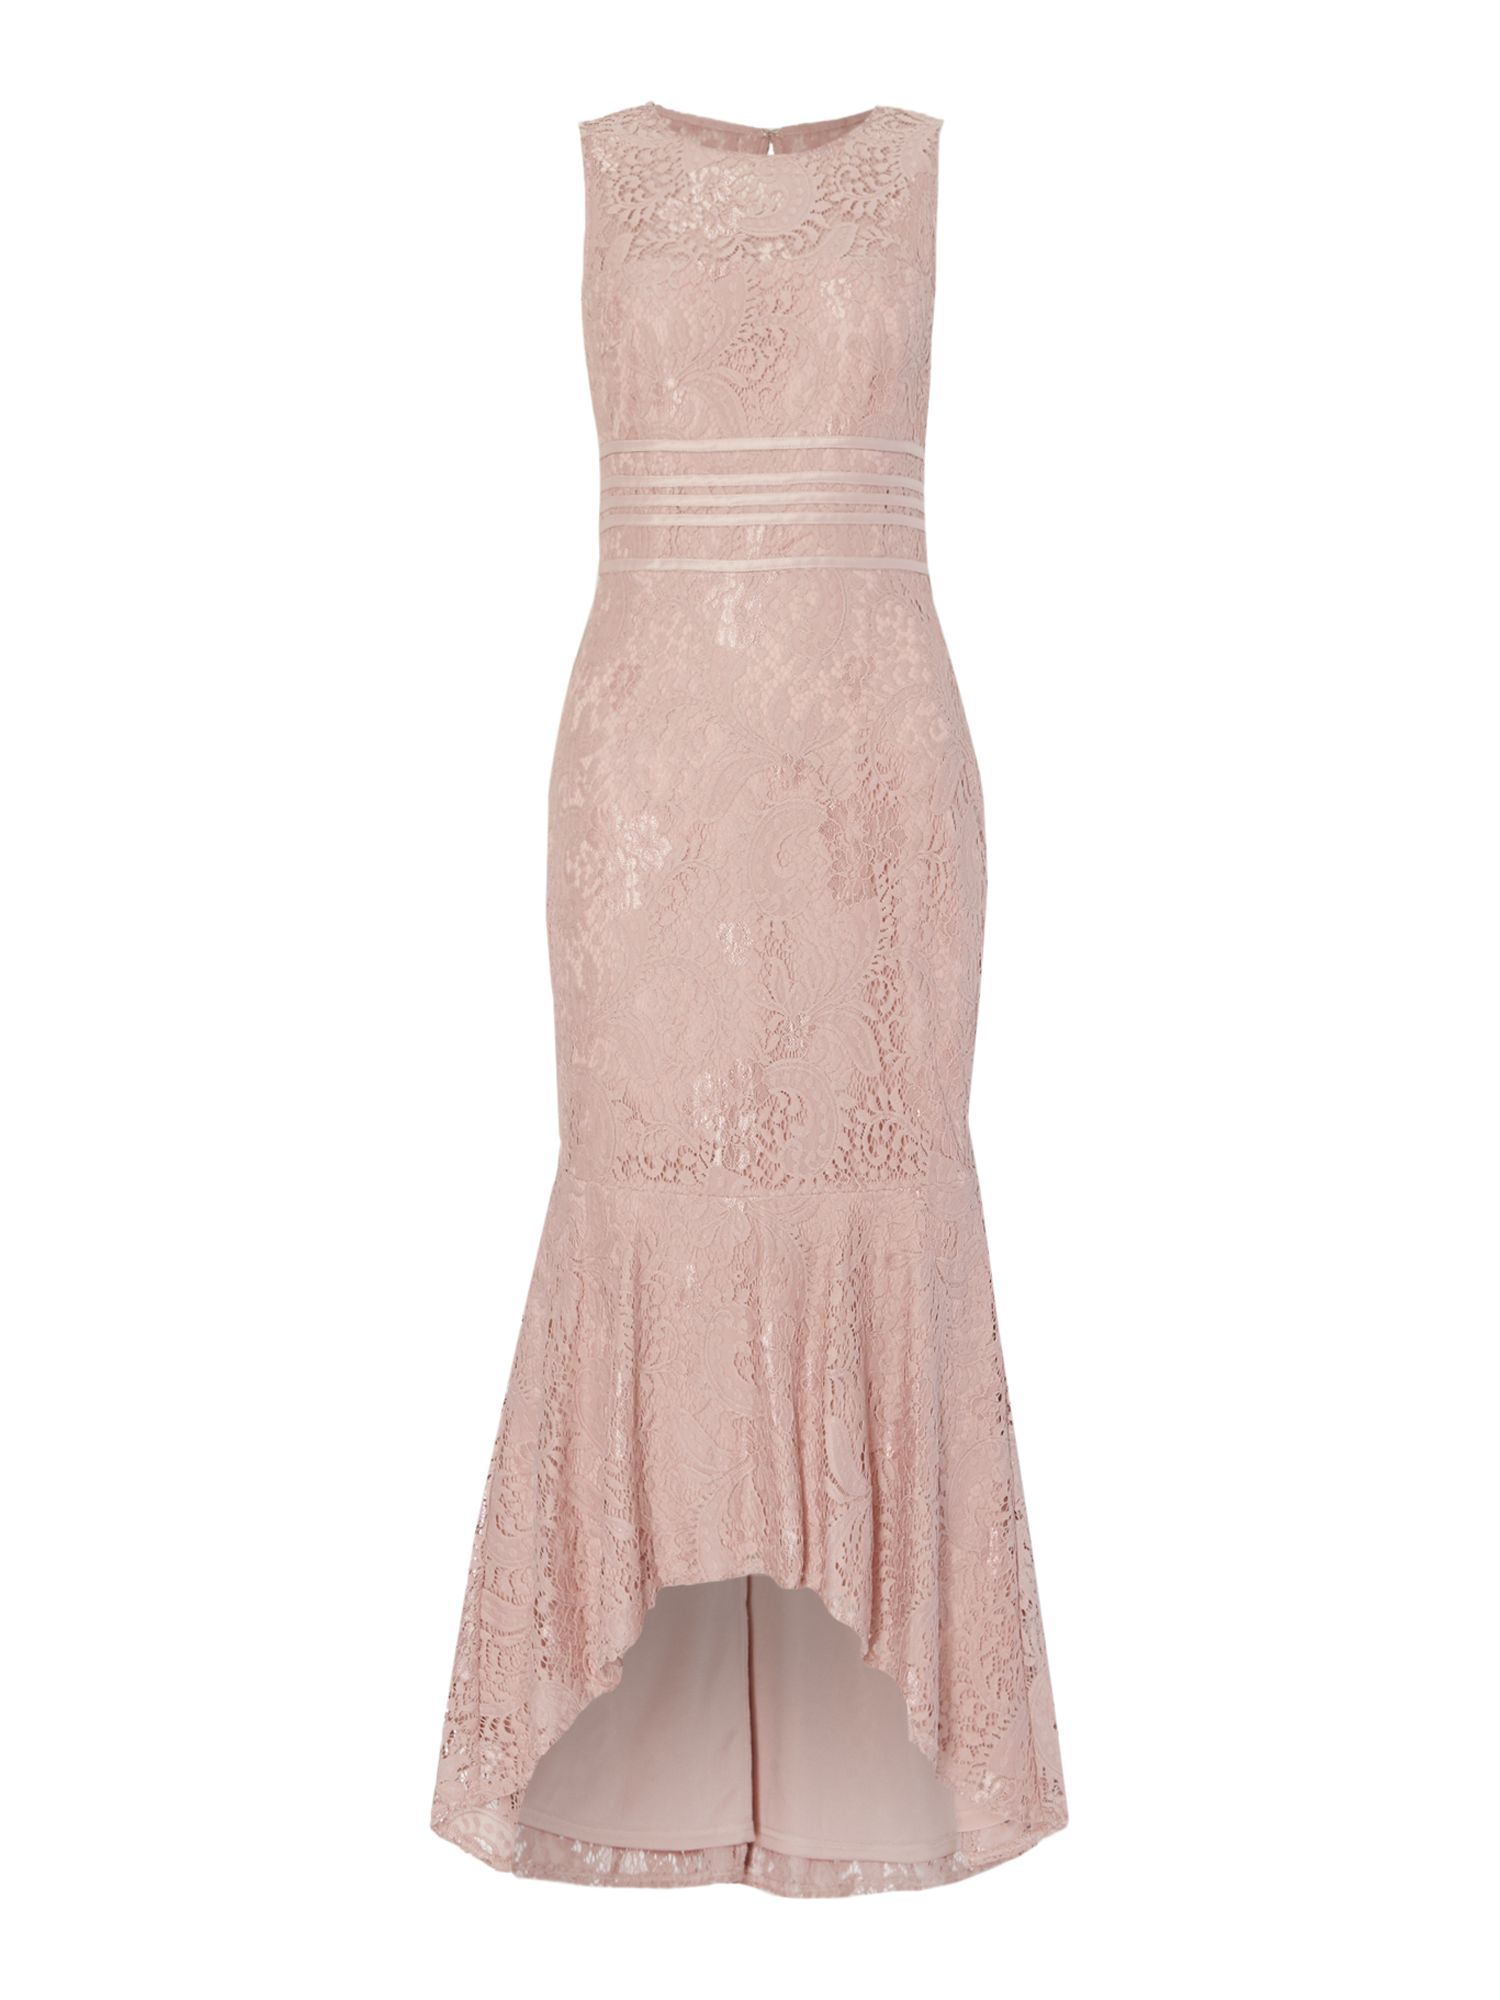 JS Collections Midi lace dress with banding, Pink